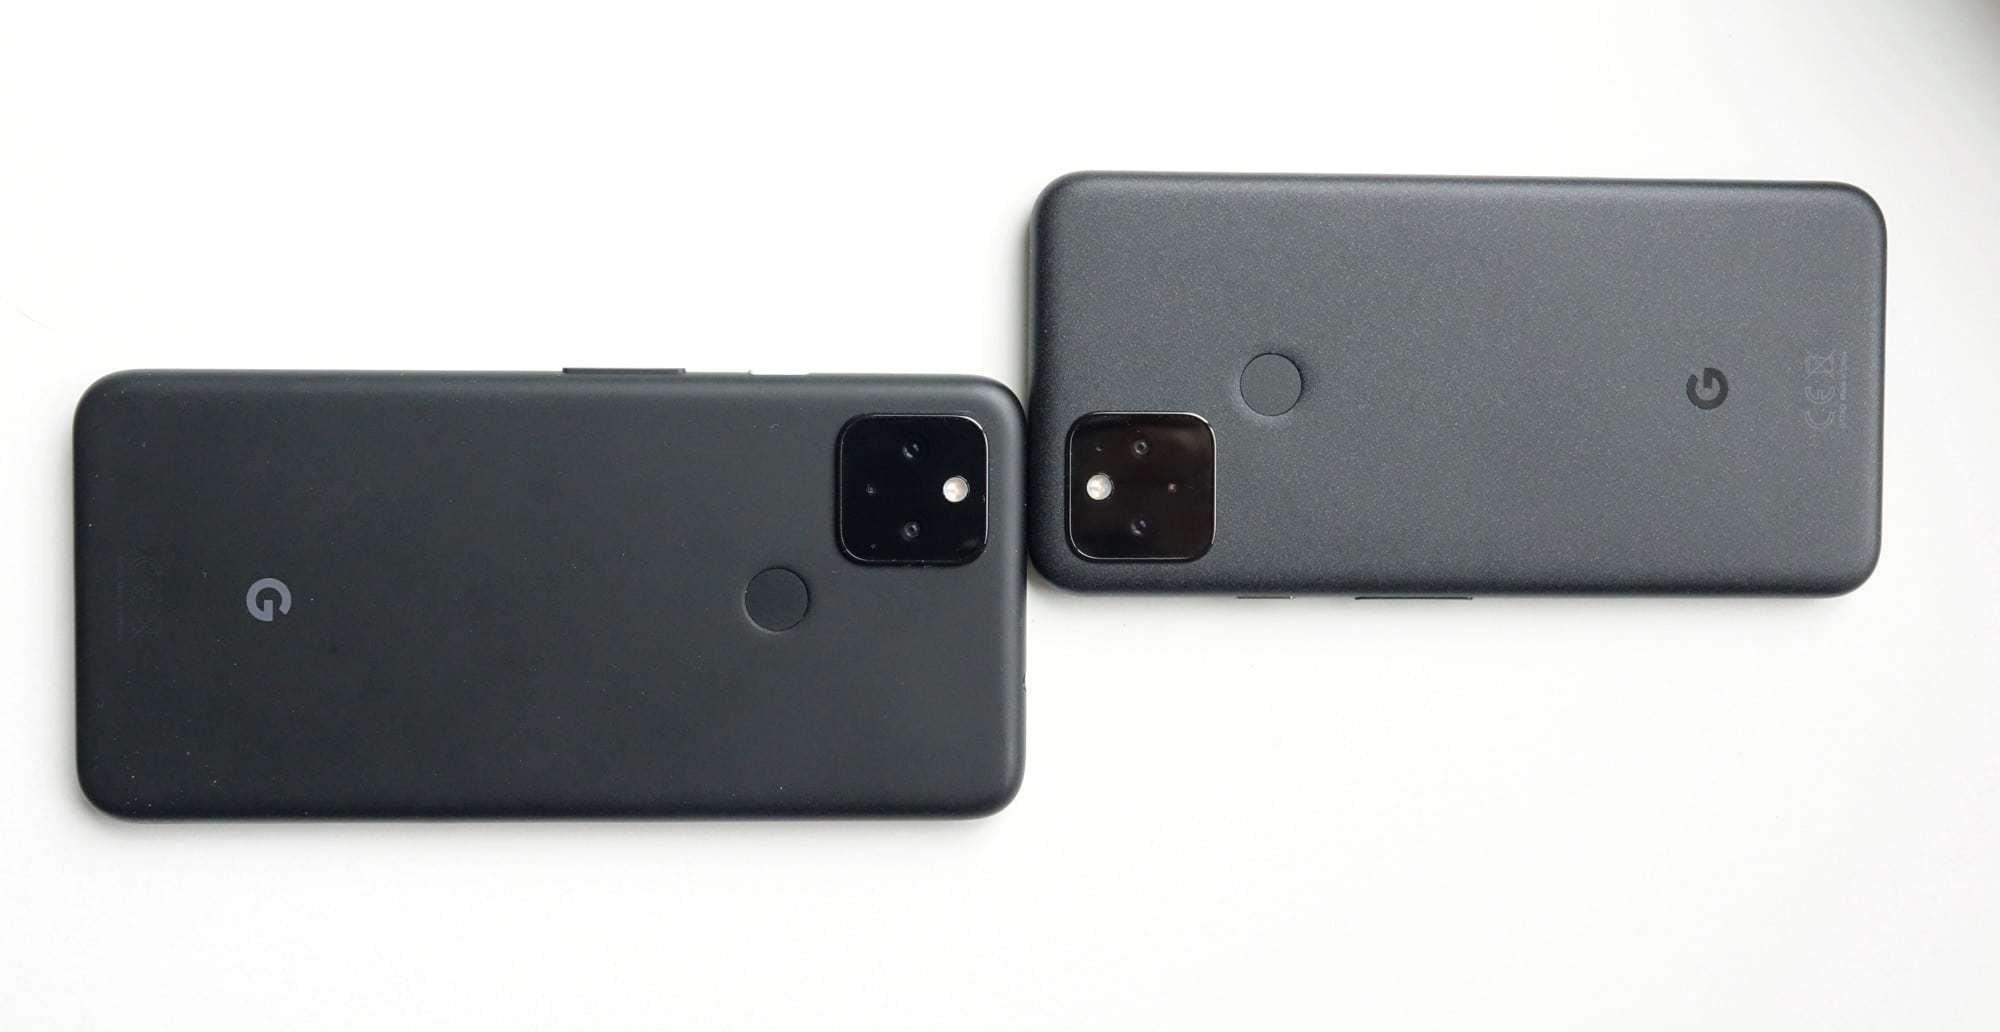 The cameras on the Pixel 4a with 5G (left) and the Pixel 5 (right).